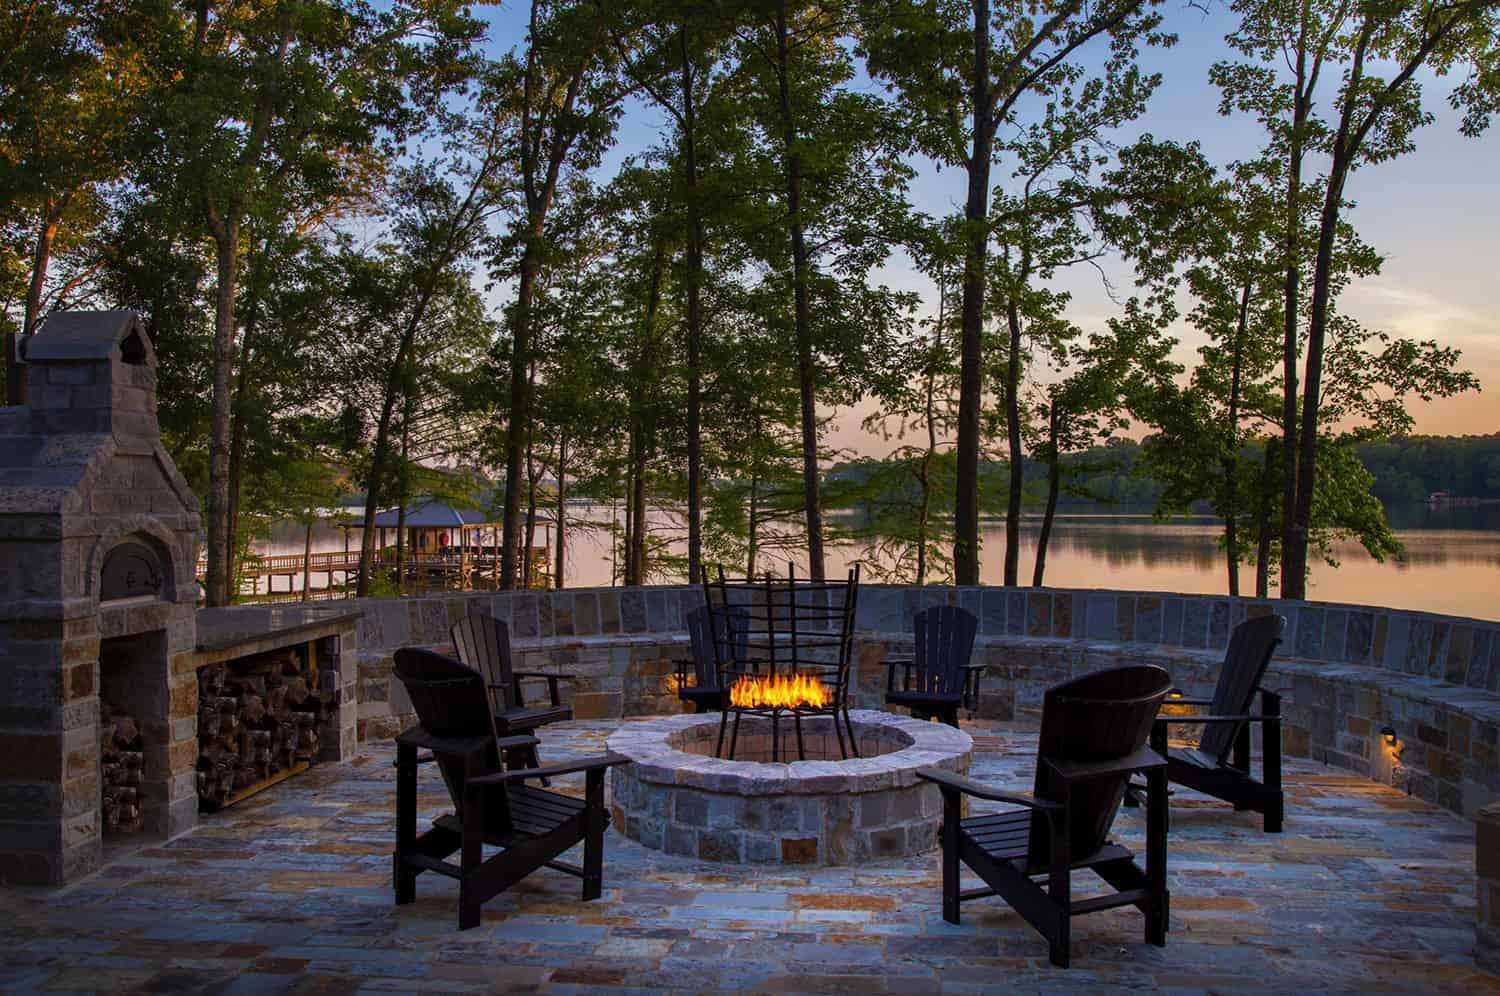 rustic-outdoor-patio-with-a-fire-pit-overlooking-the-lake